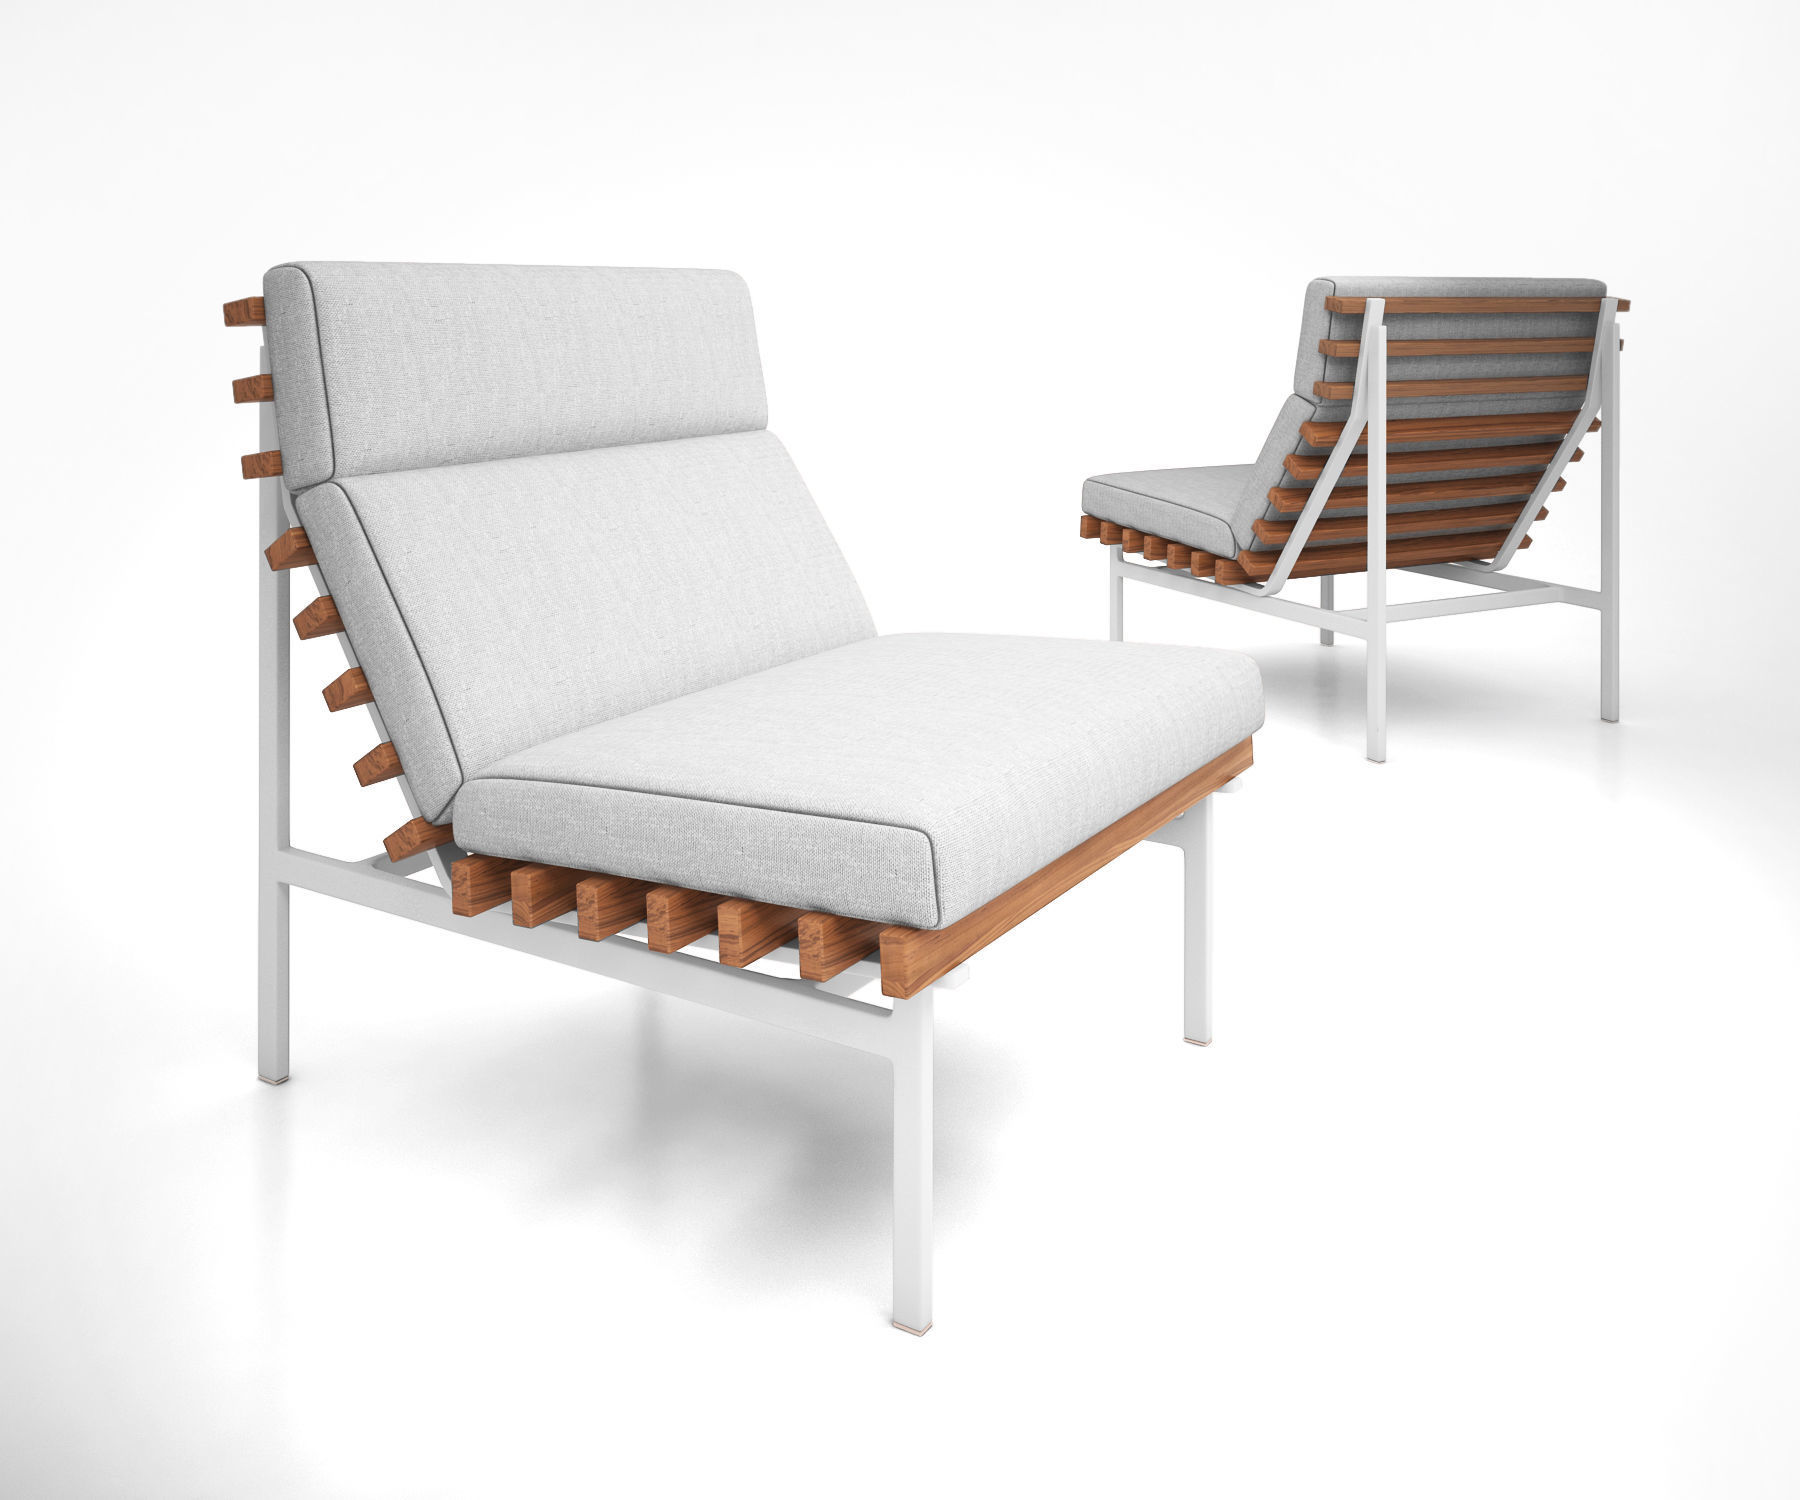 Family Perch Modern Outdoor Lounge Chair By Bludot 3d